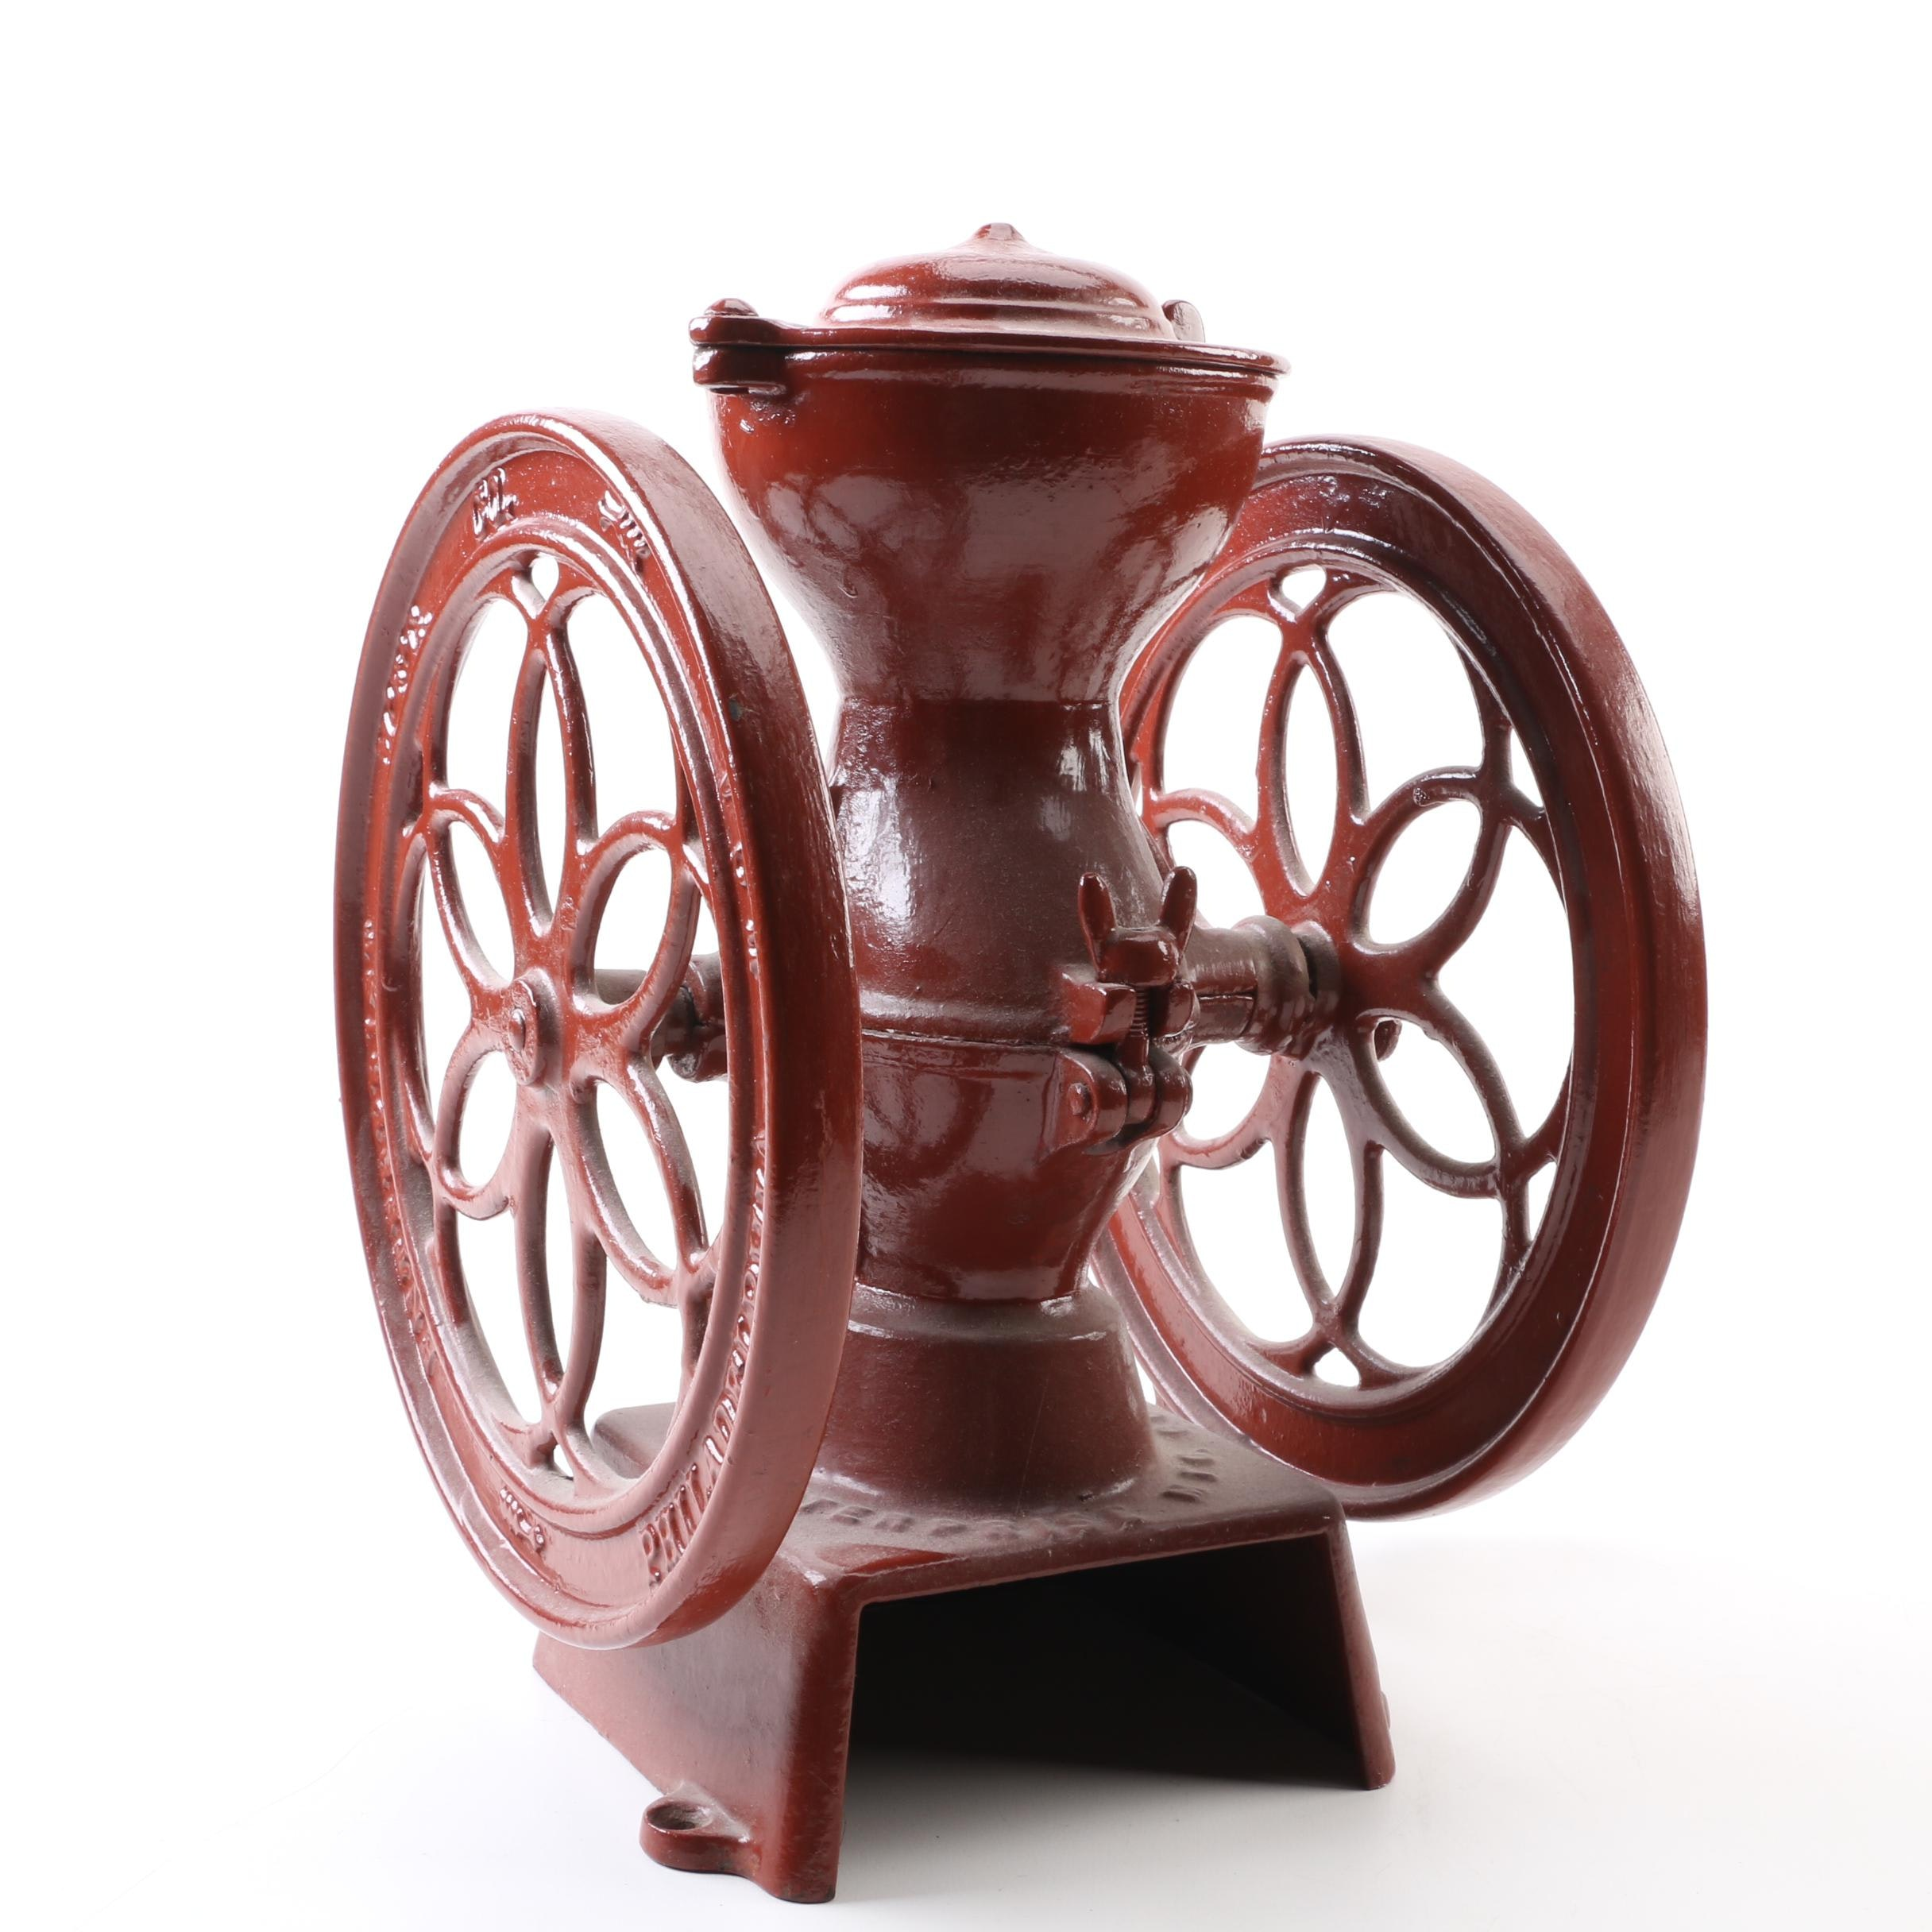 Early 20th Century Enterprise Coffee Grinder